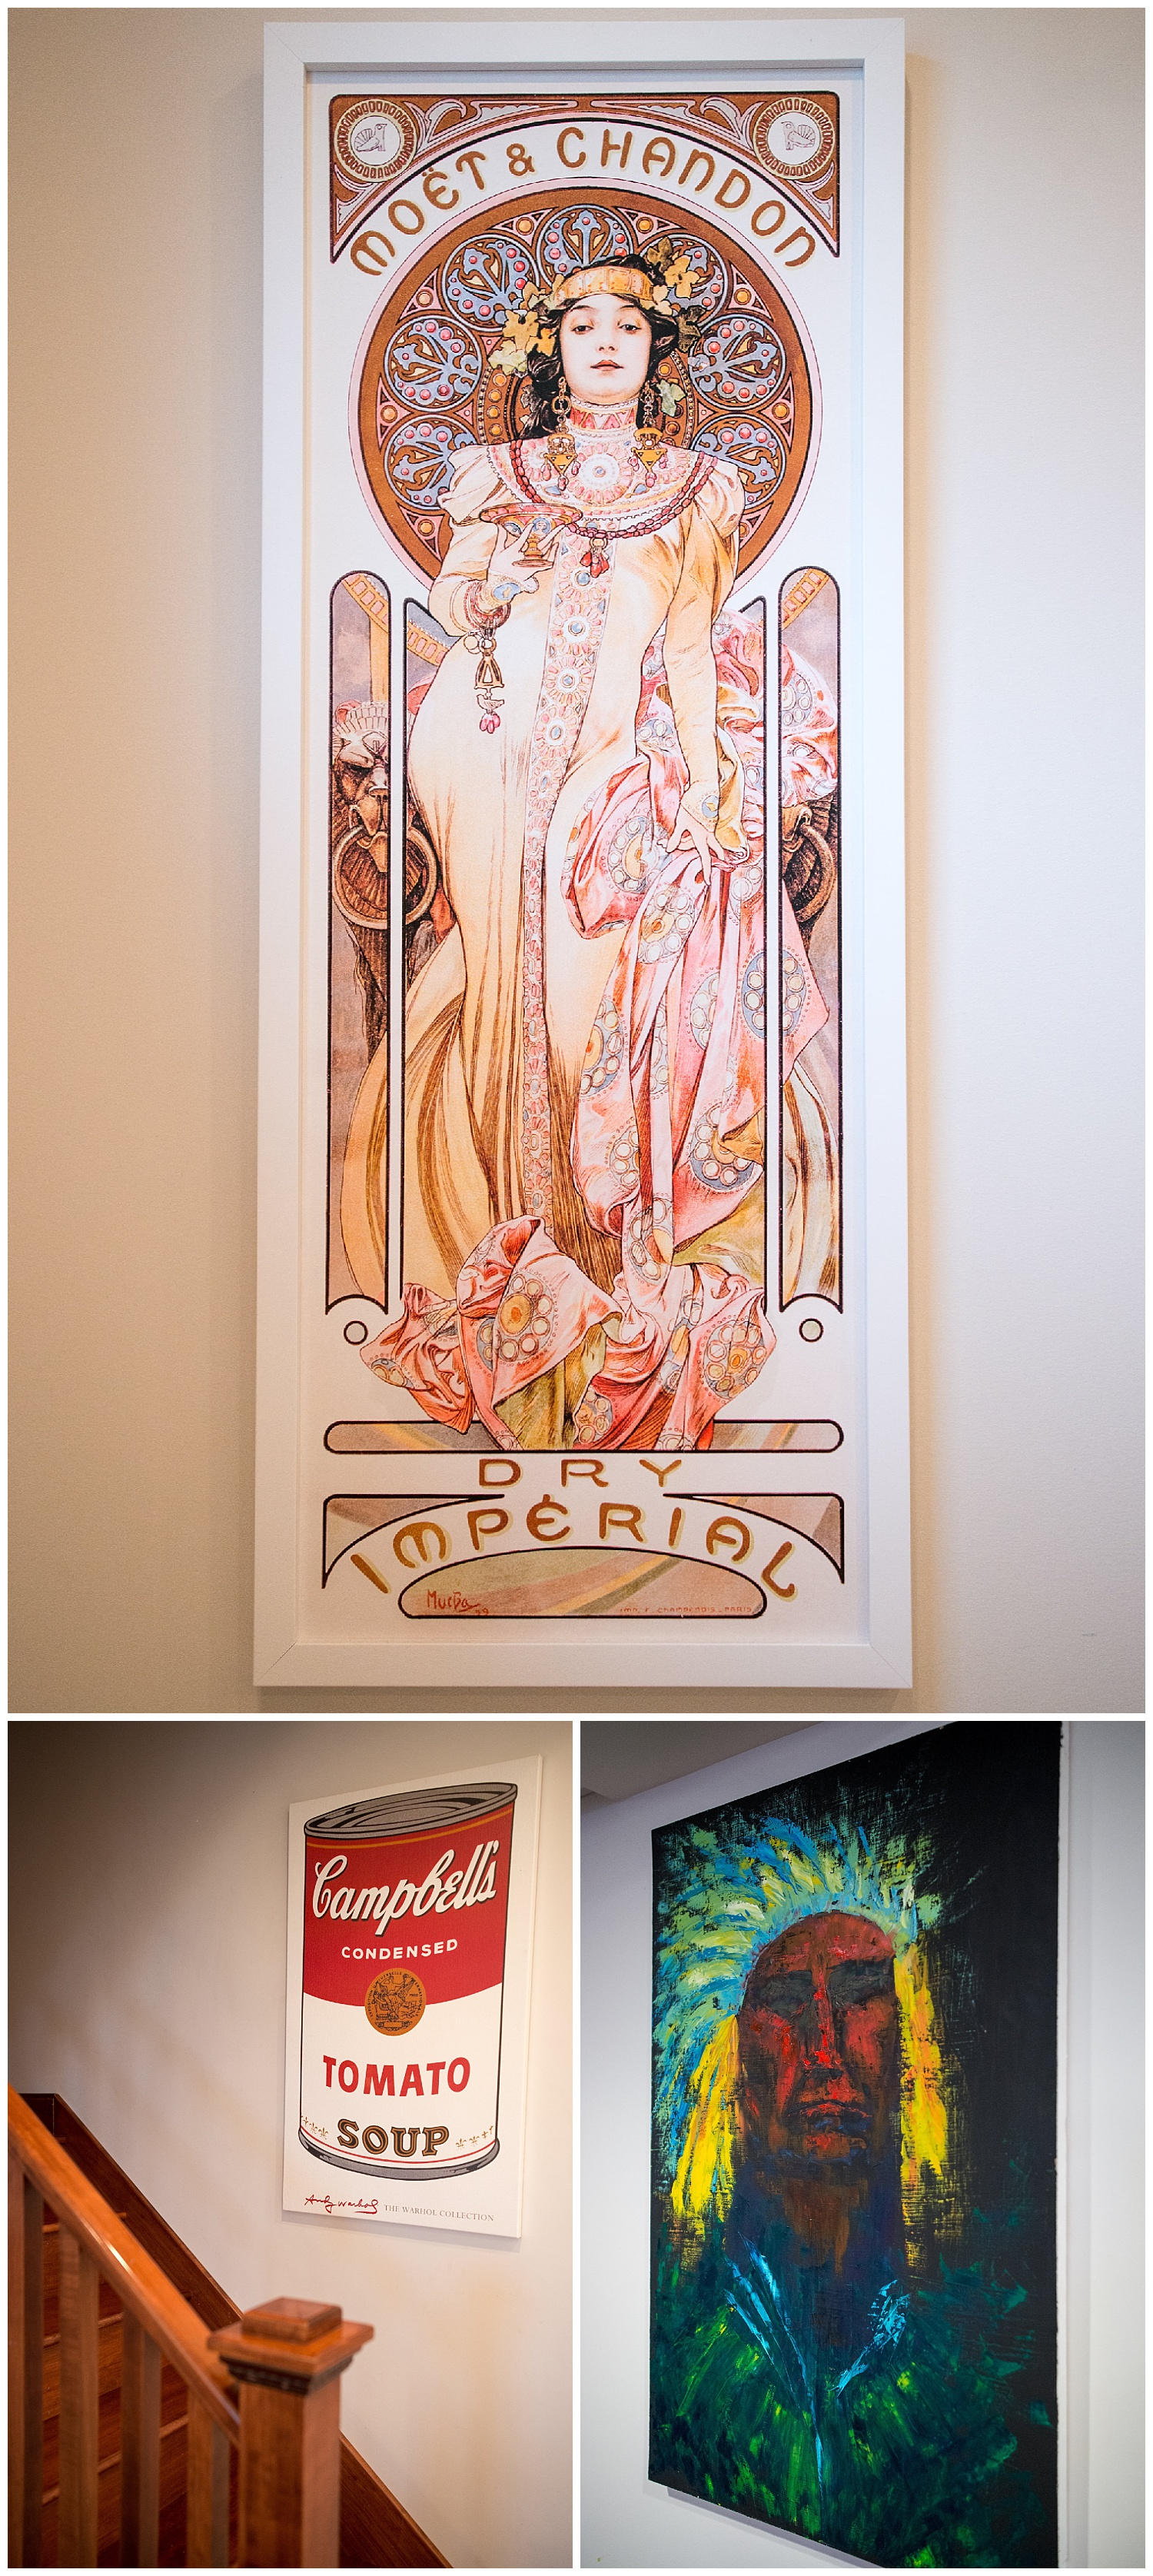 Leslie's artwork is all unique and all of it has meaning. Rich and Leslie have visited Moët in Champagne, France. The Warhol print was something she's had since college and she found the Chief at the Effingham Farmers Market. It's by local artist,  Jasmine Reardon .